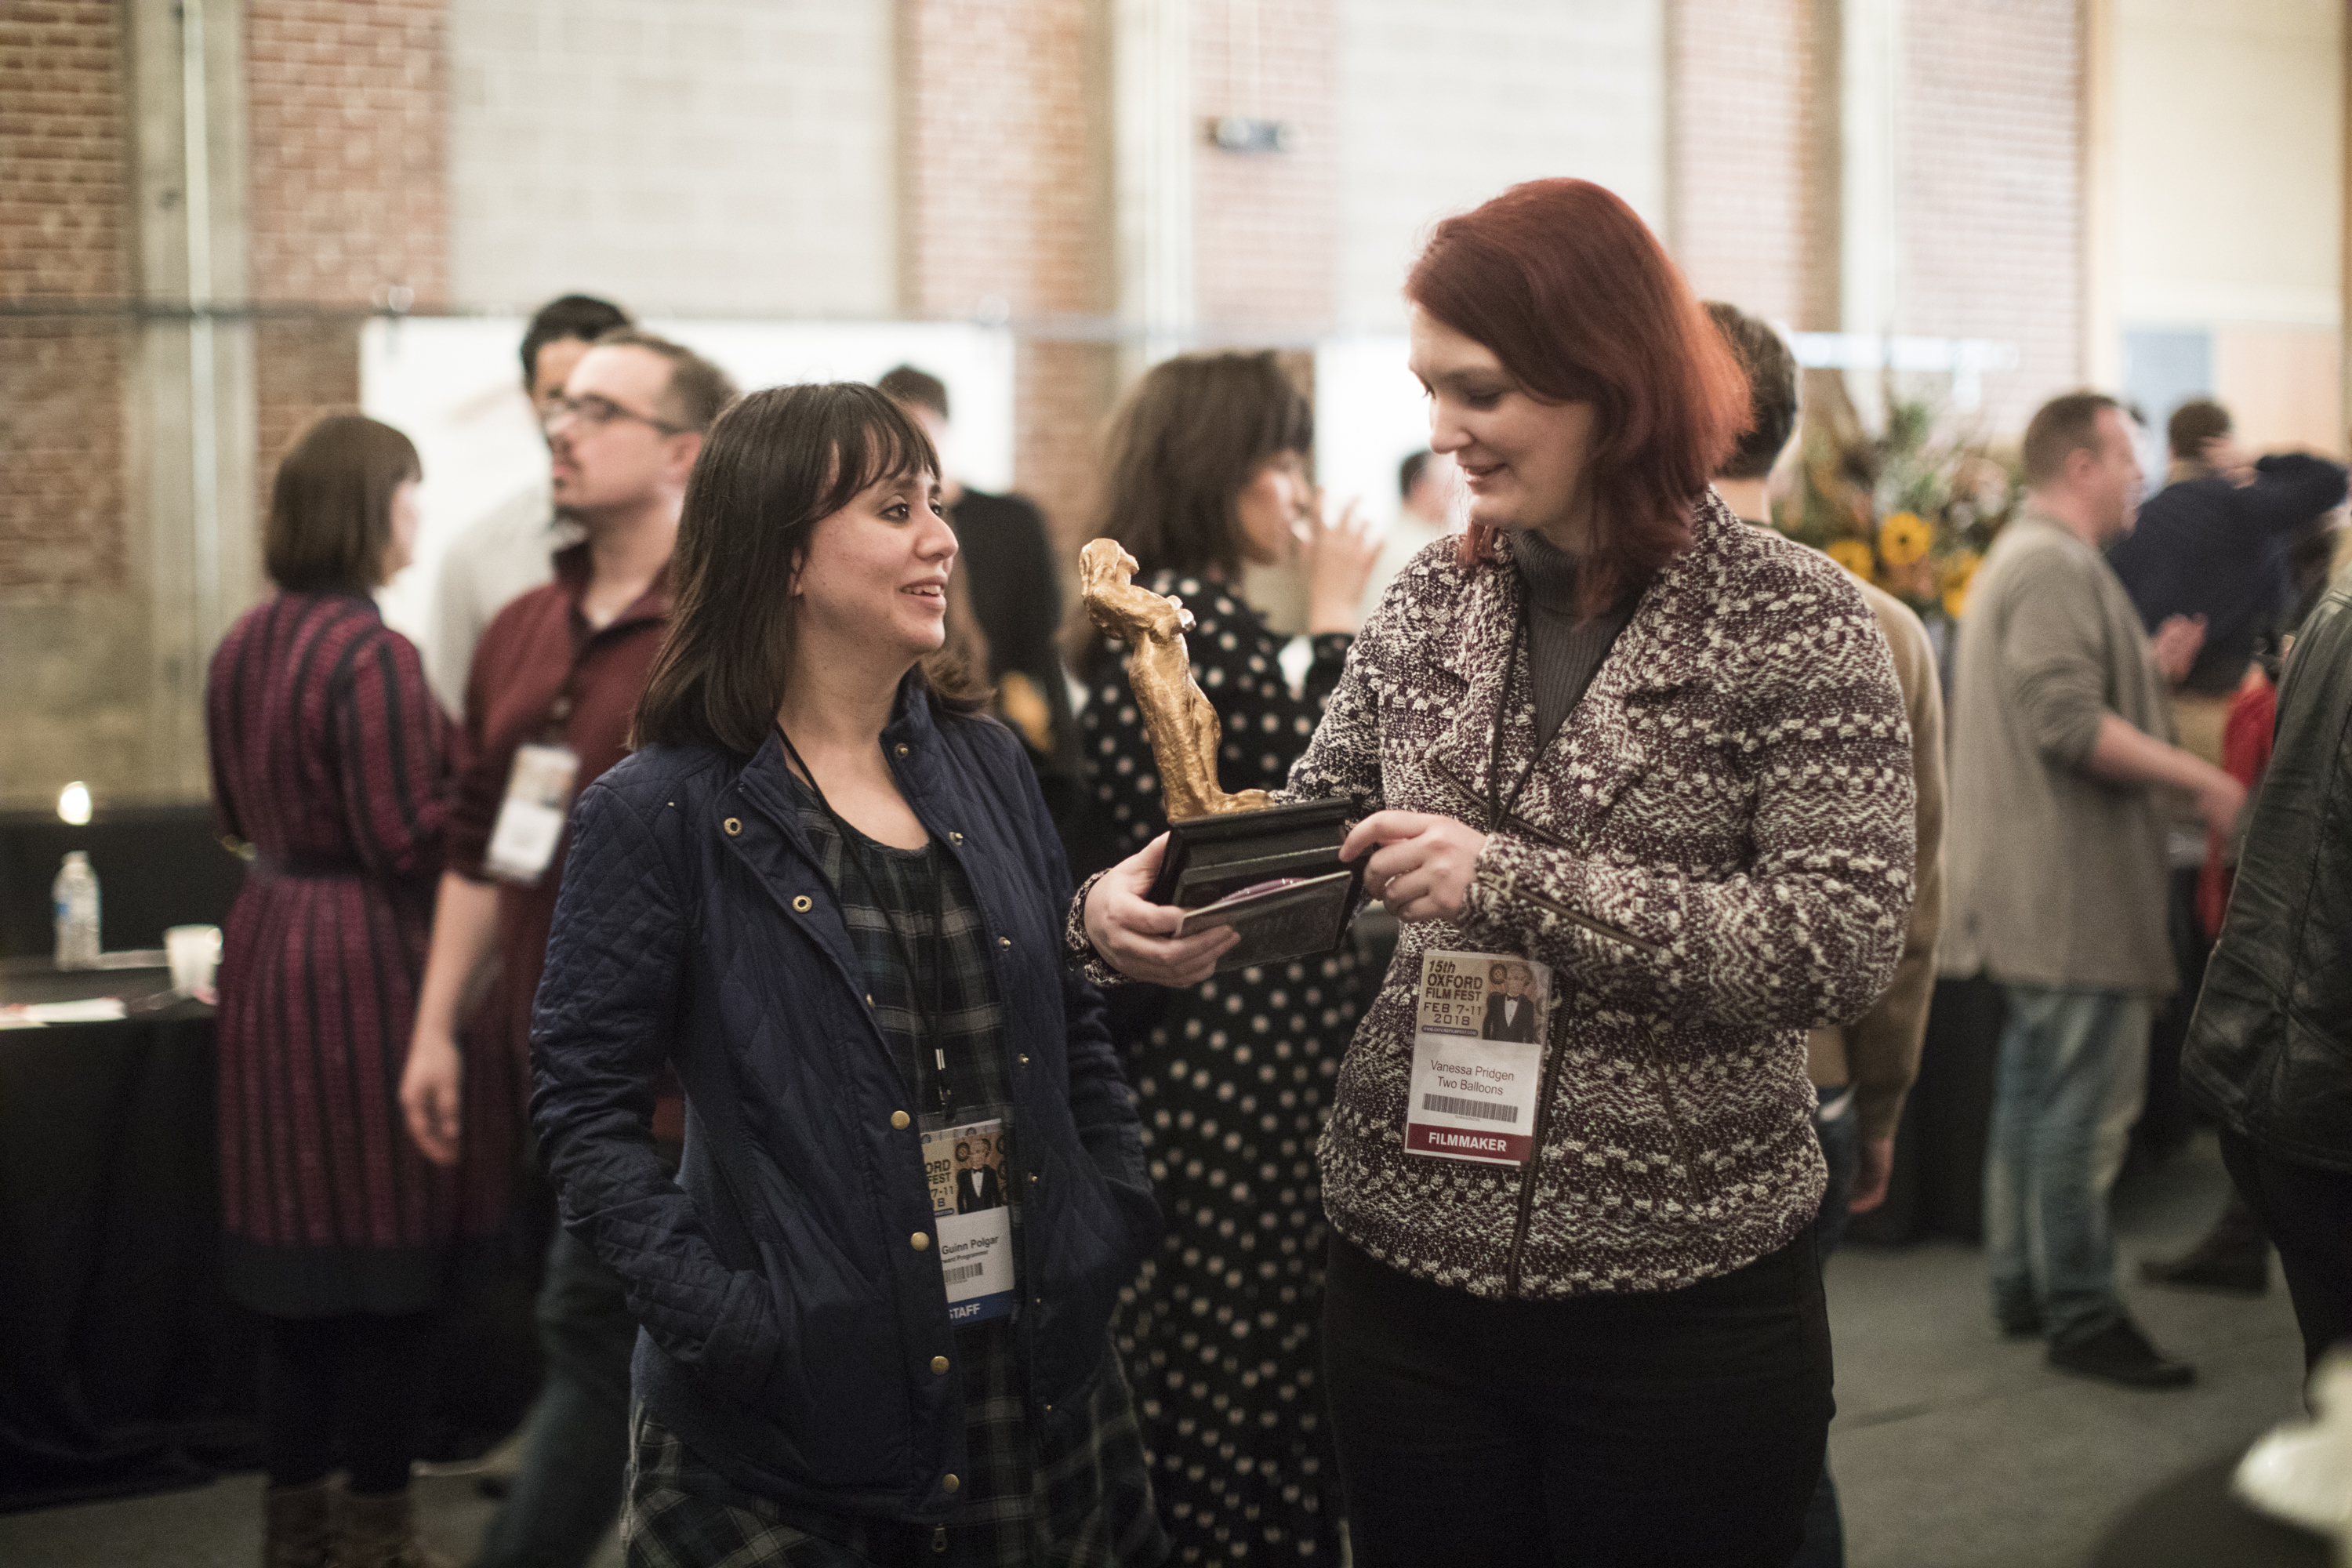 Two women talk at a crowded convention. The two women are friendly